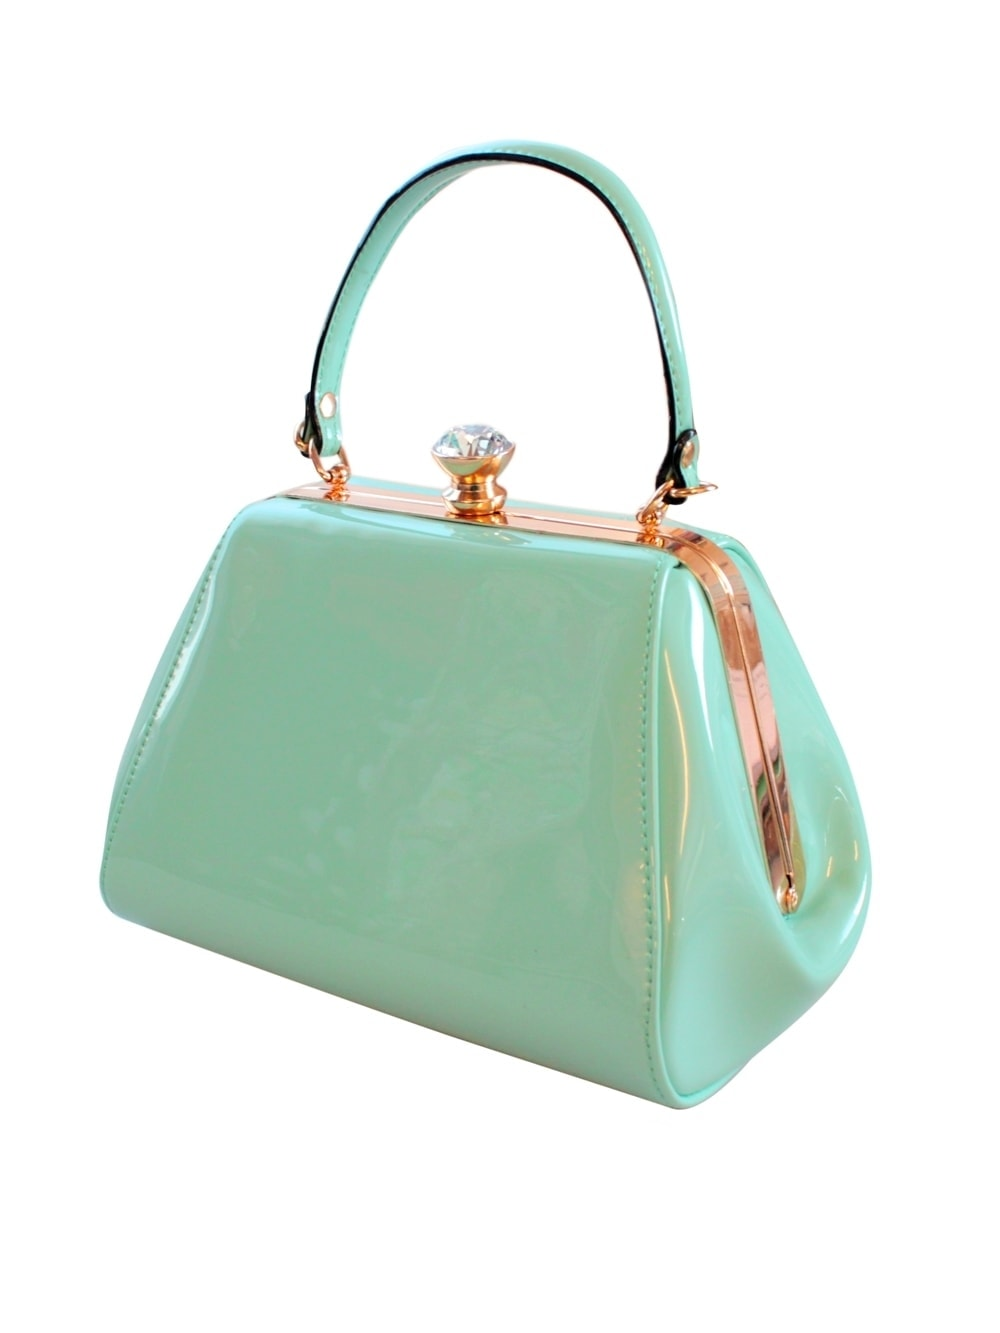 Tiffany Patent Handbag Mint From